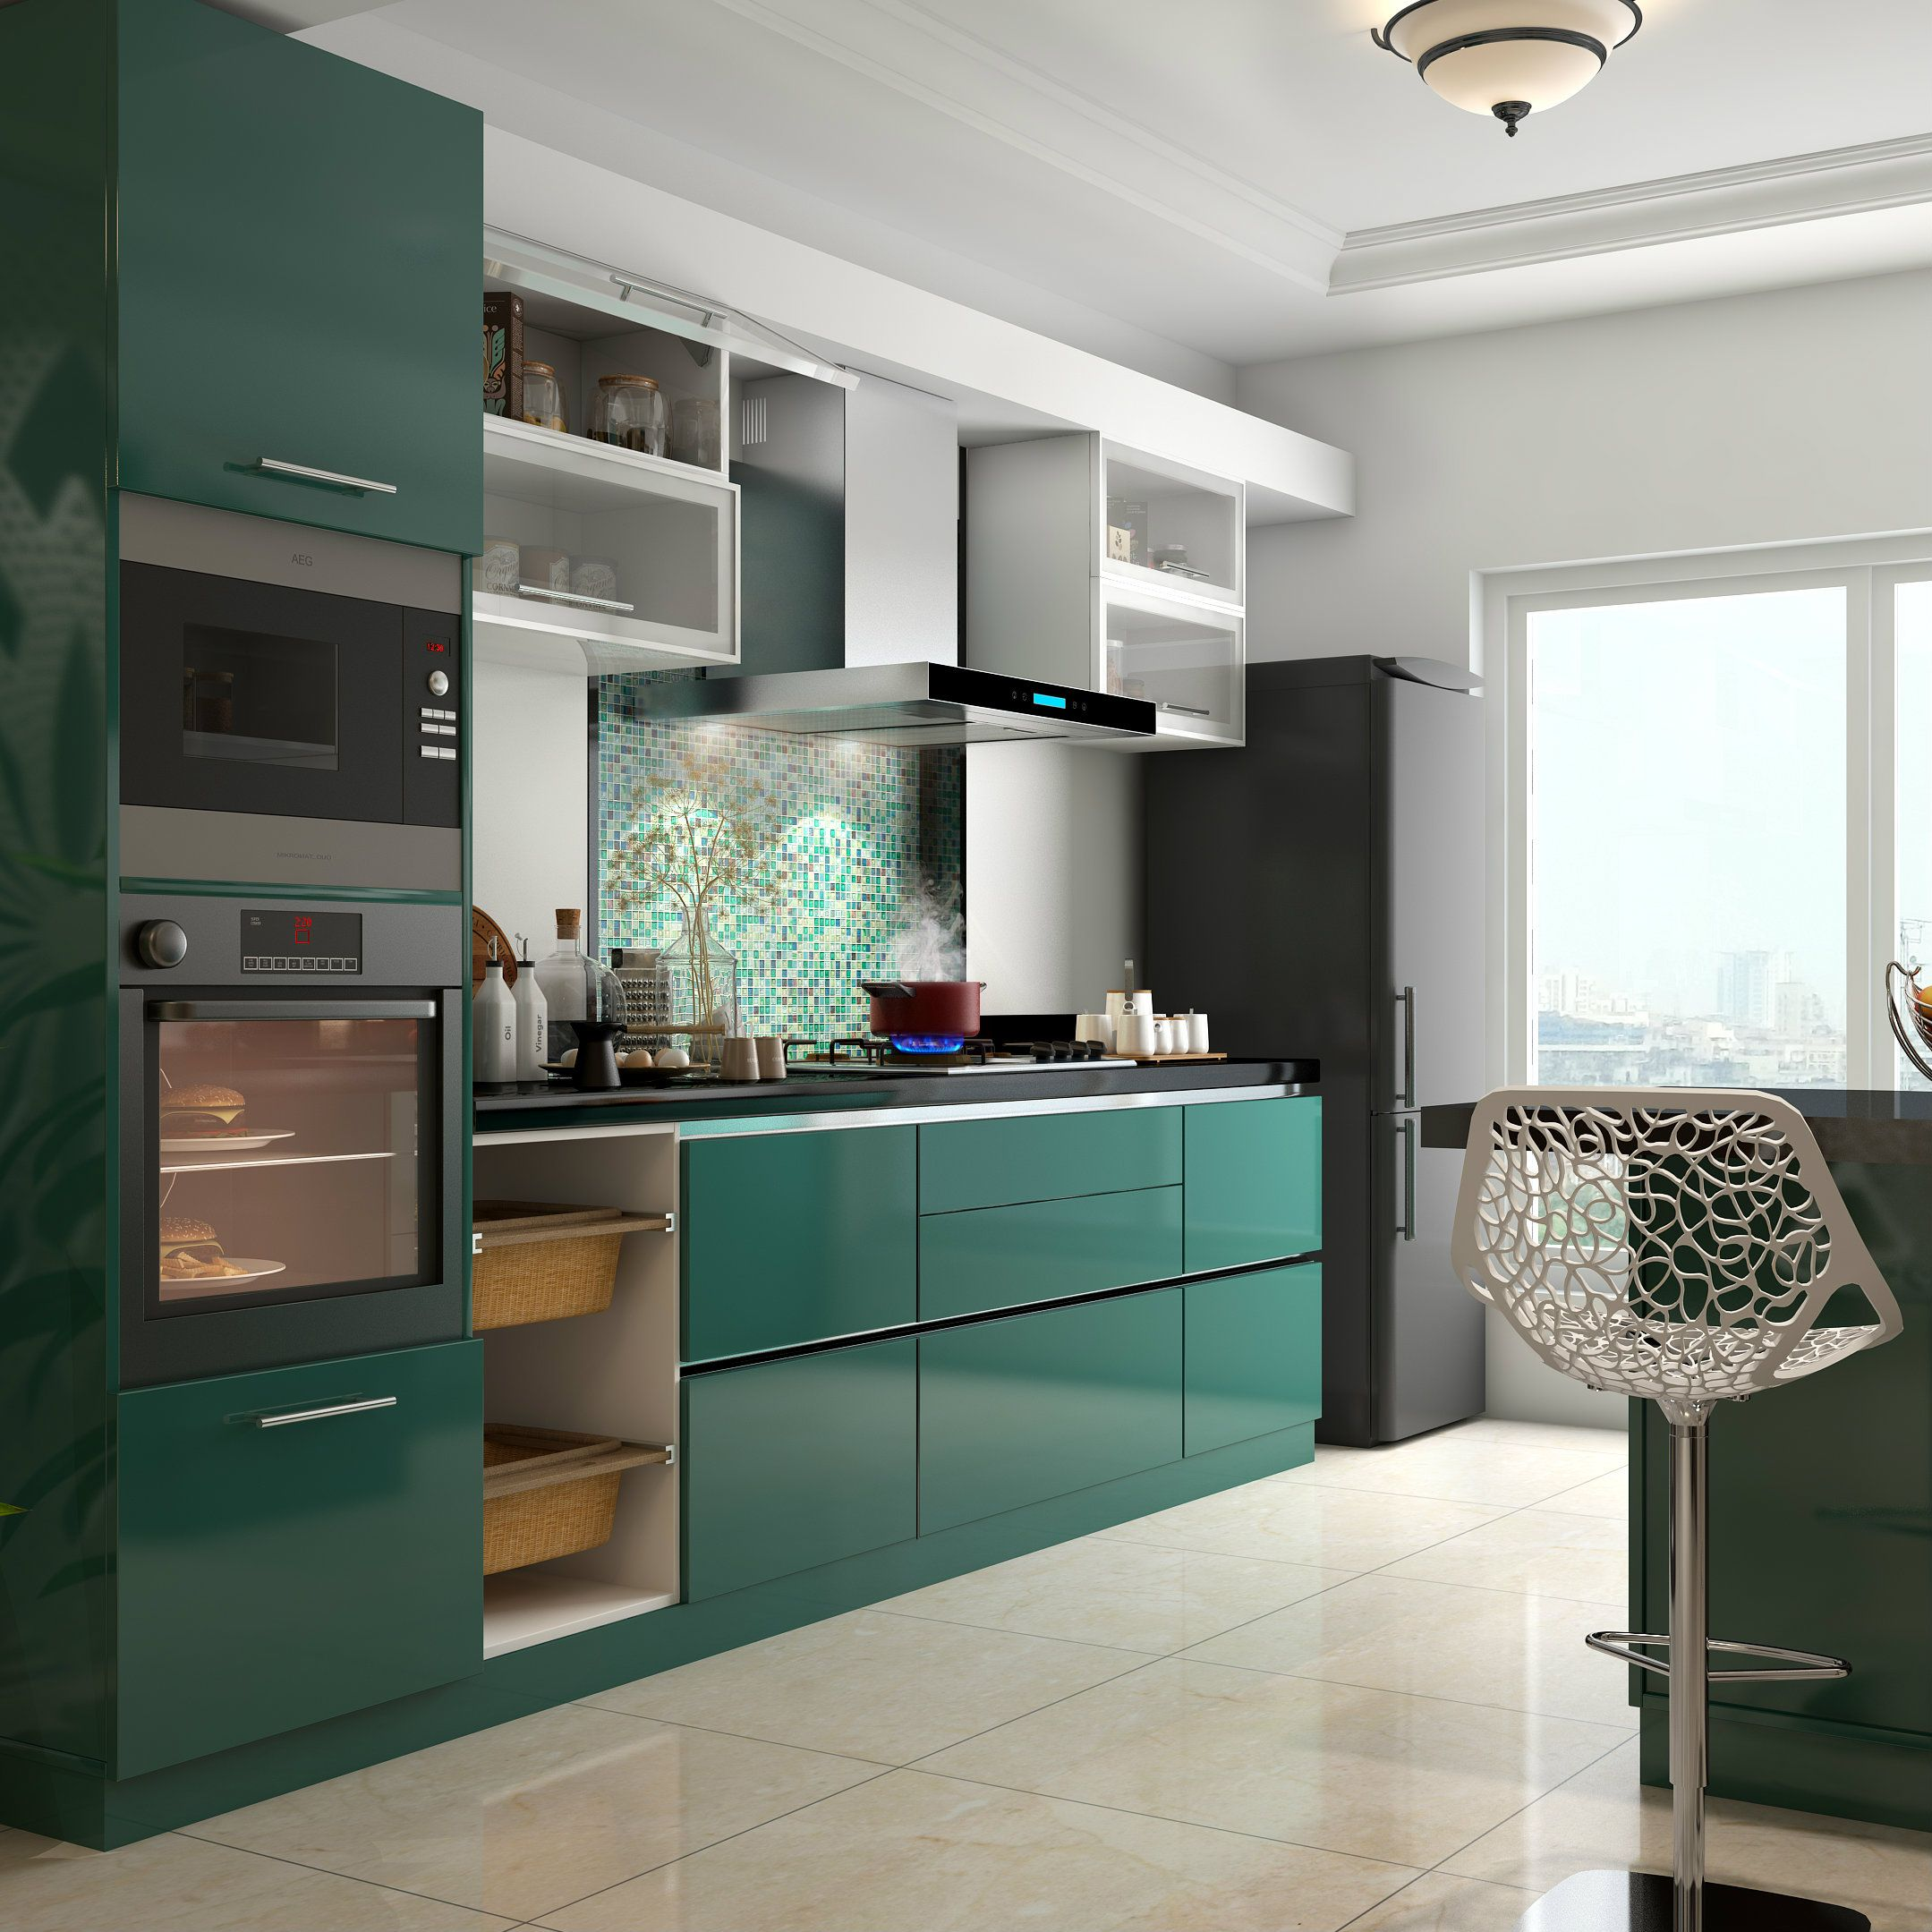 Kitchen Designs: Glossy Green Cabinets Infuse Vitality To This Kitchen